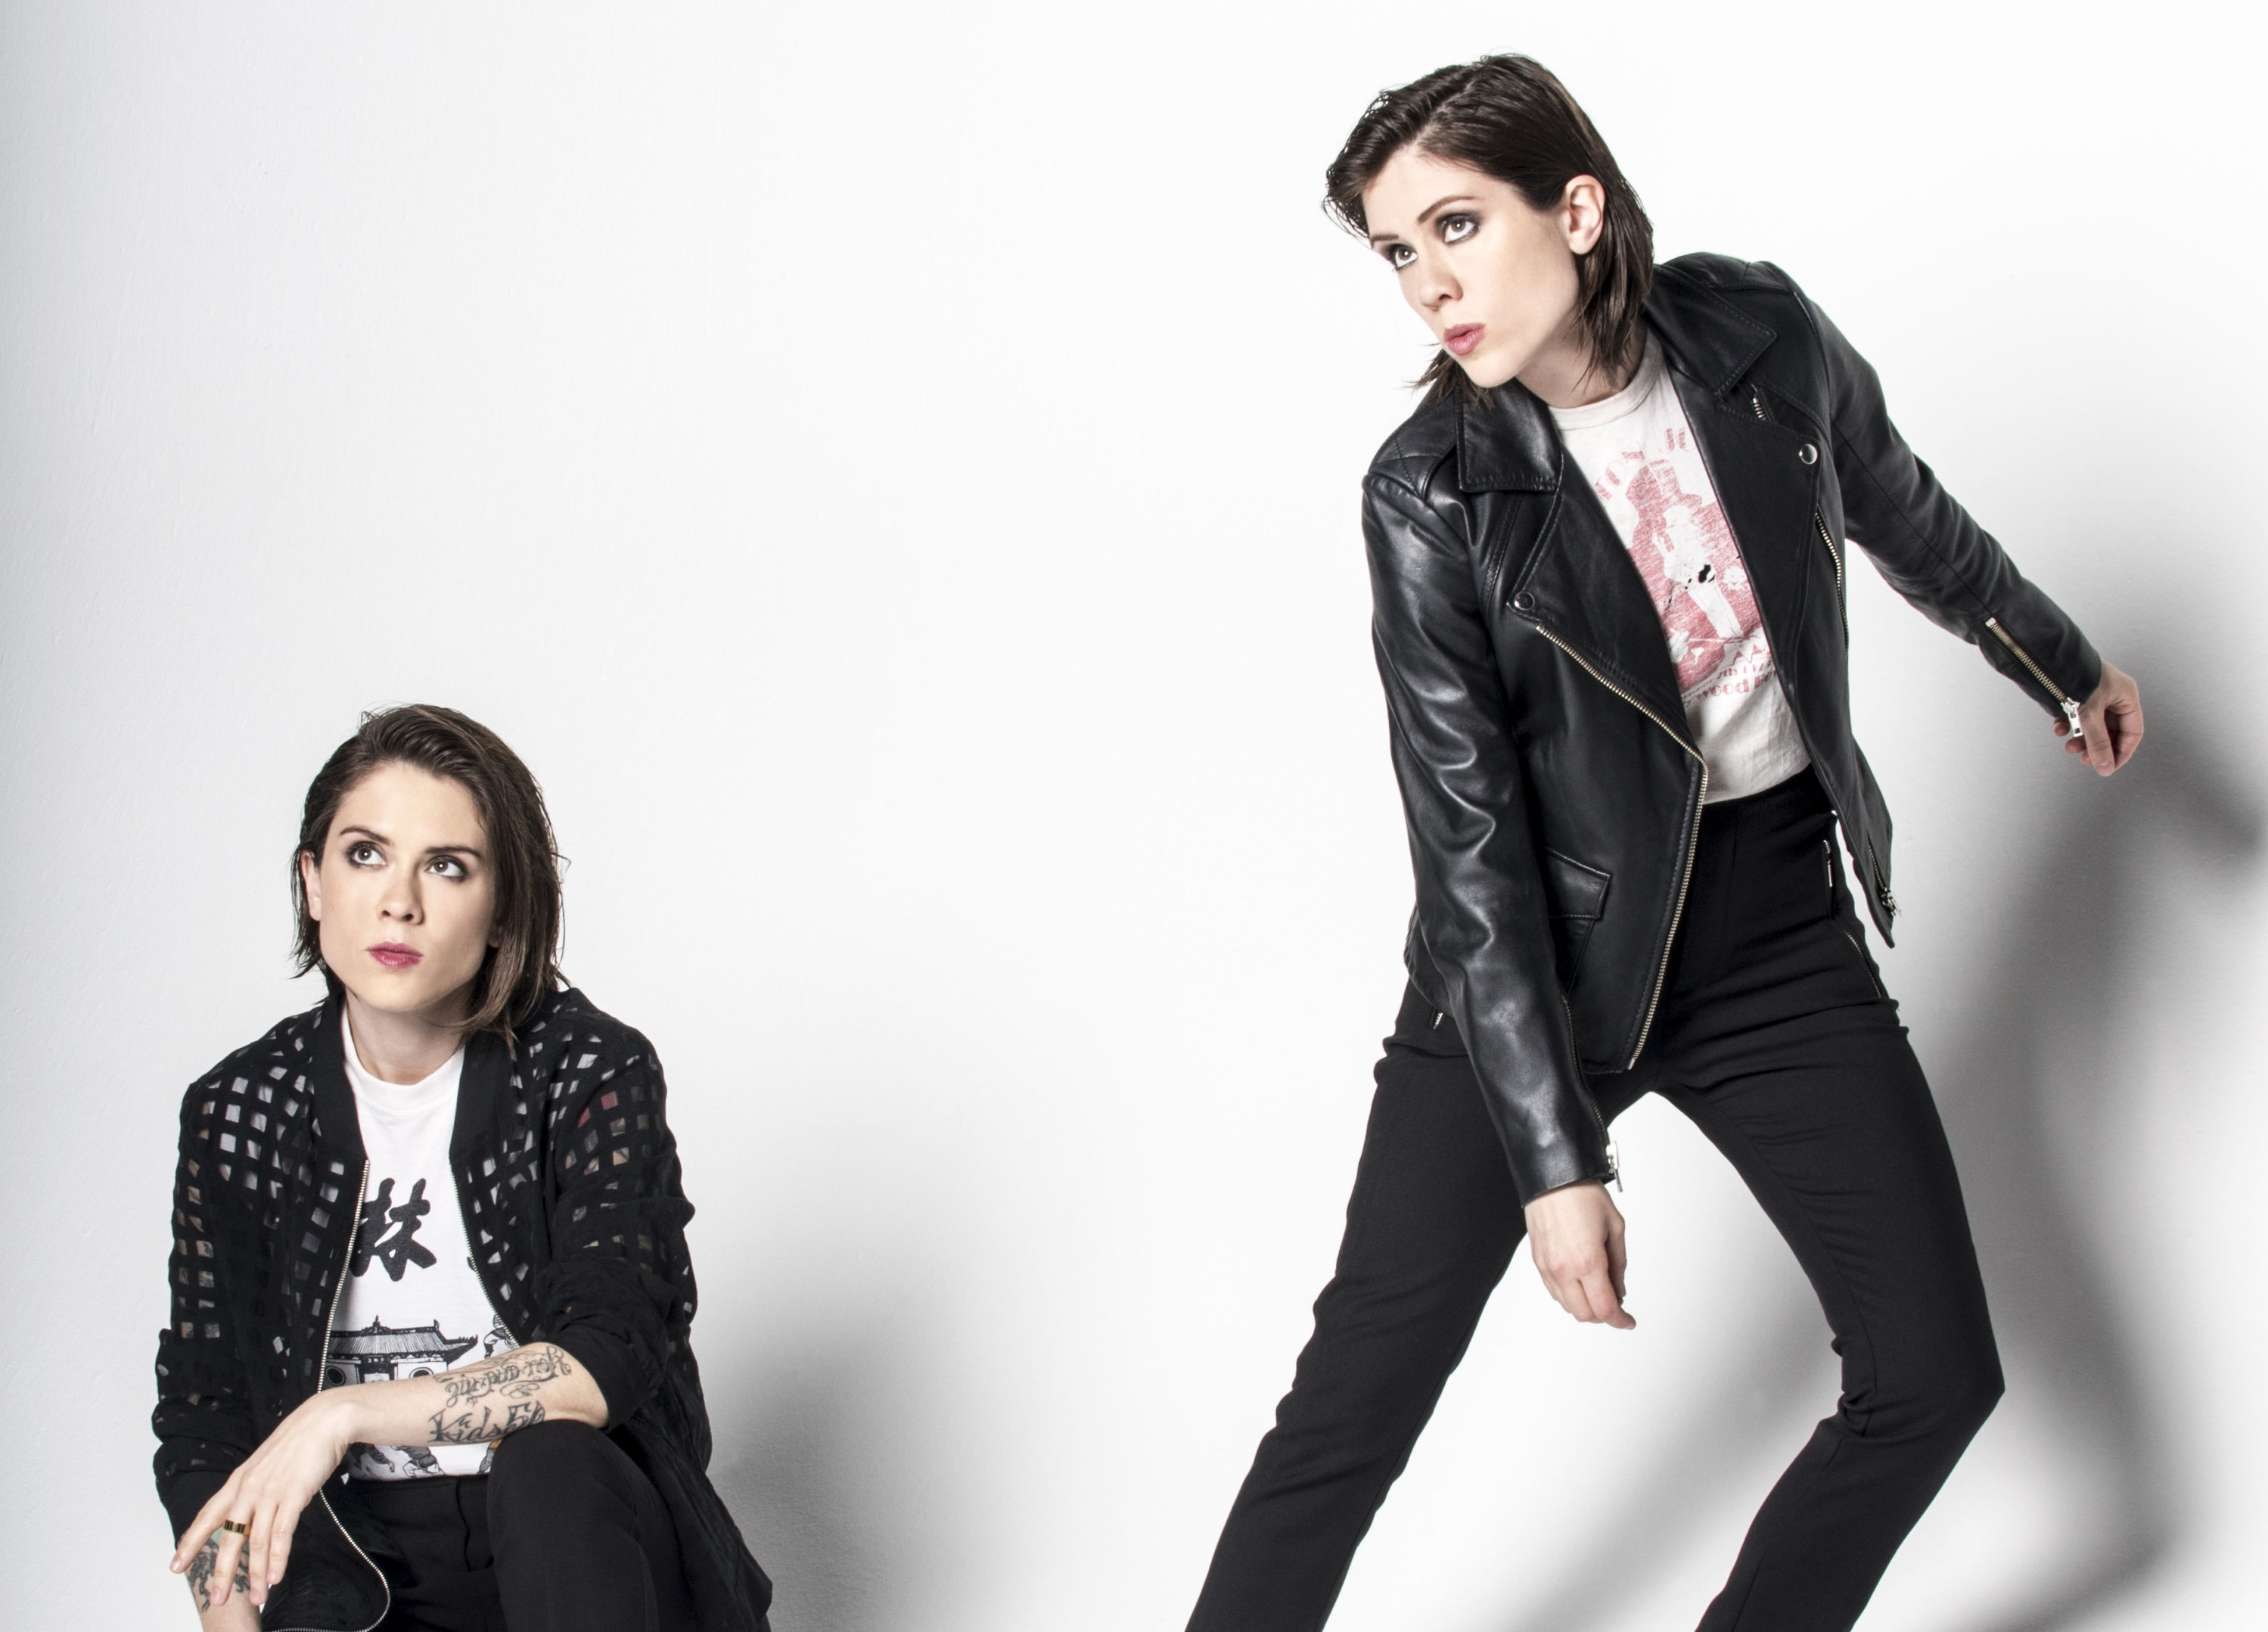 Tegan and Sara announce The Con X Tracklist